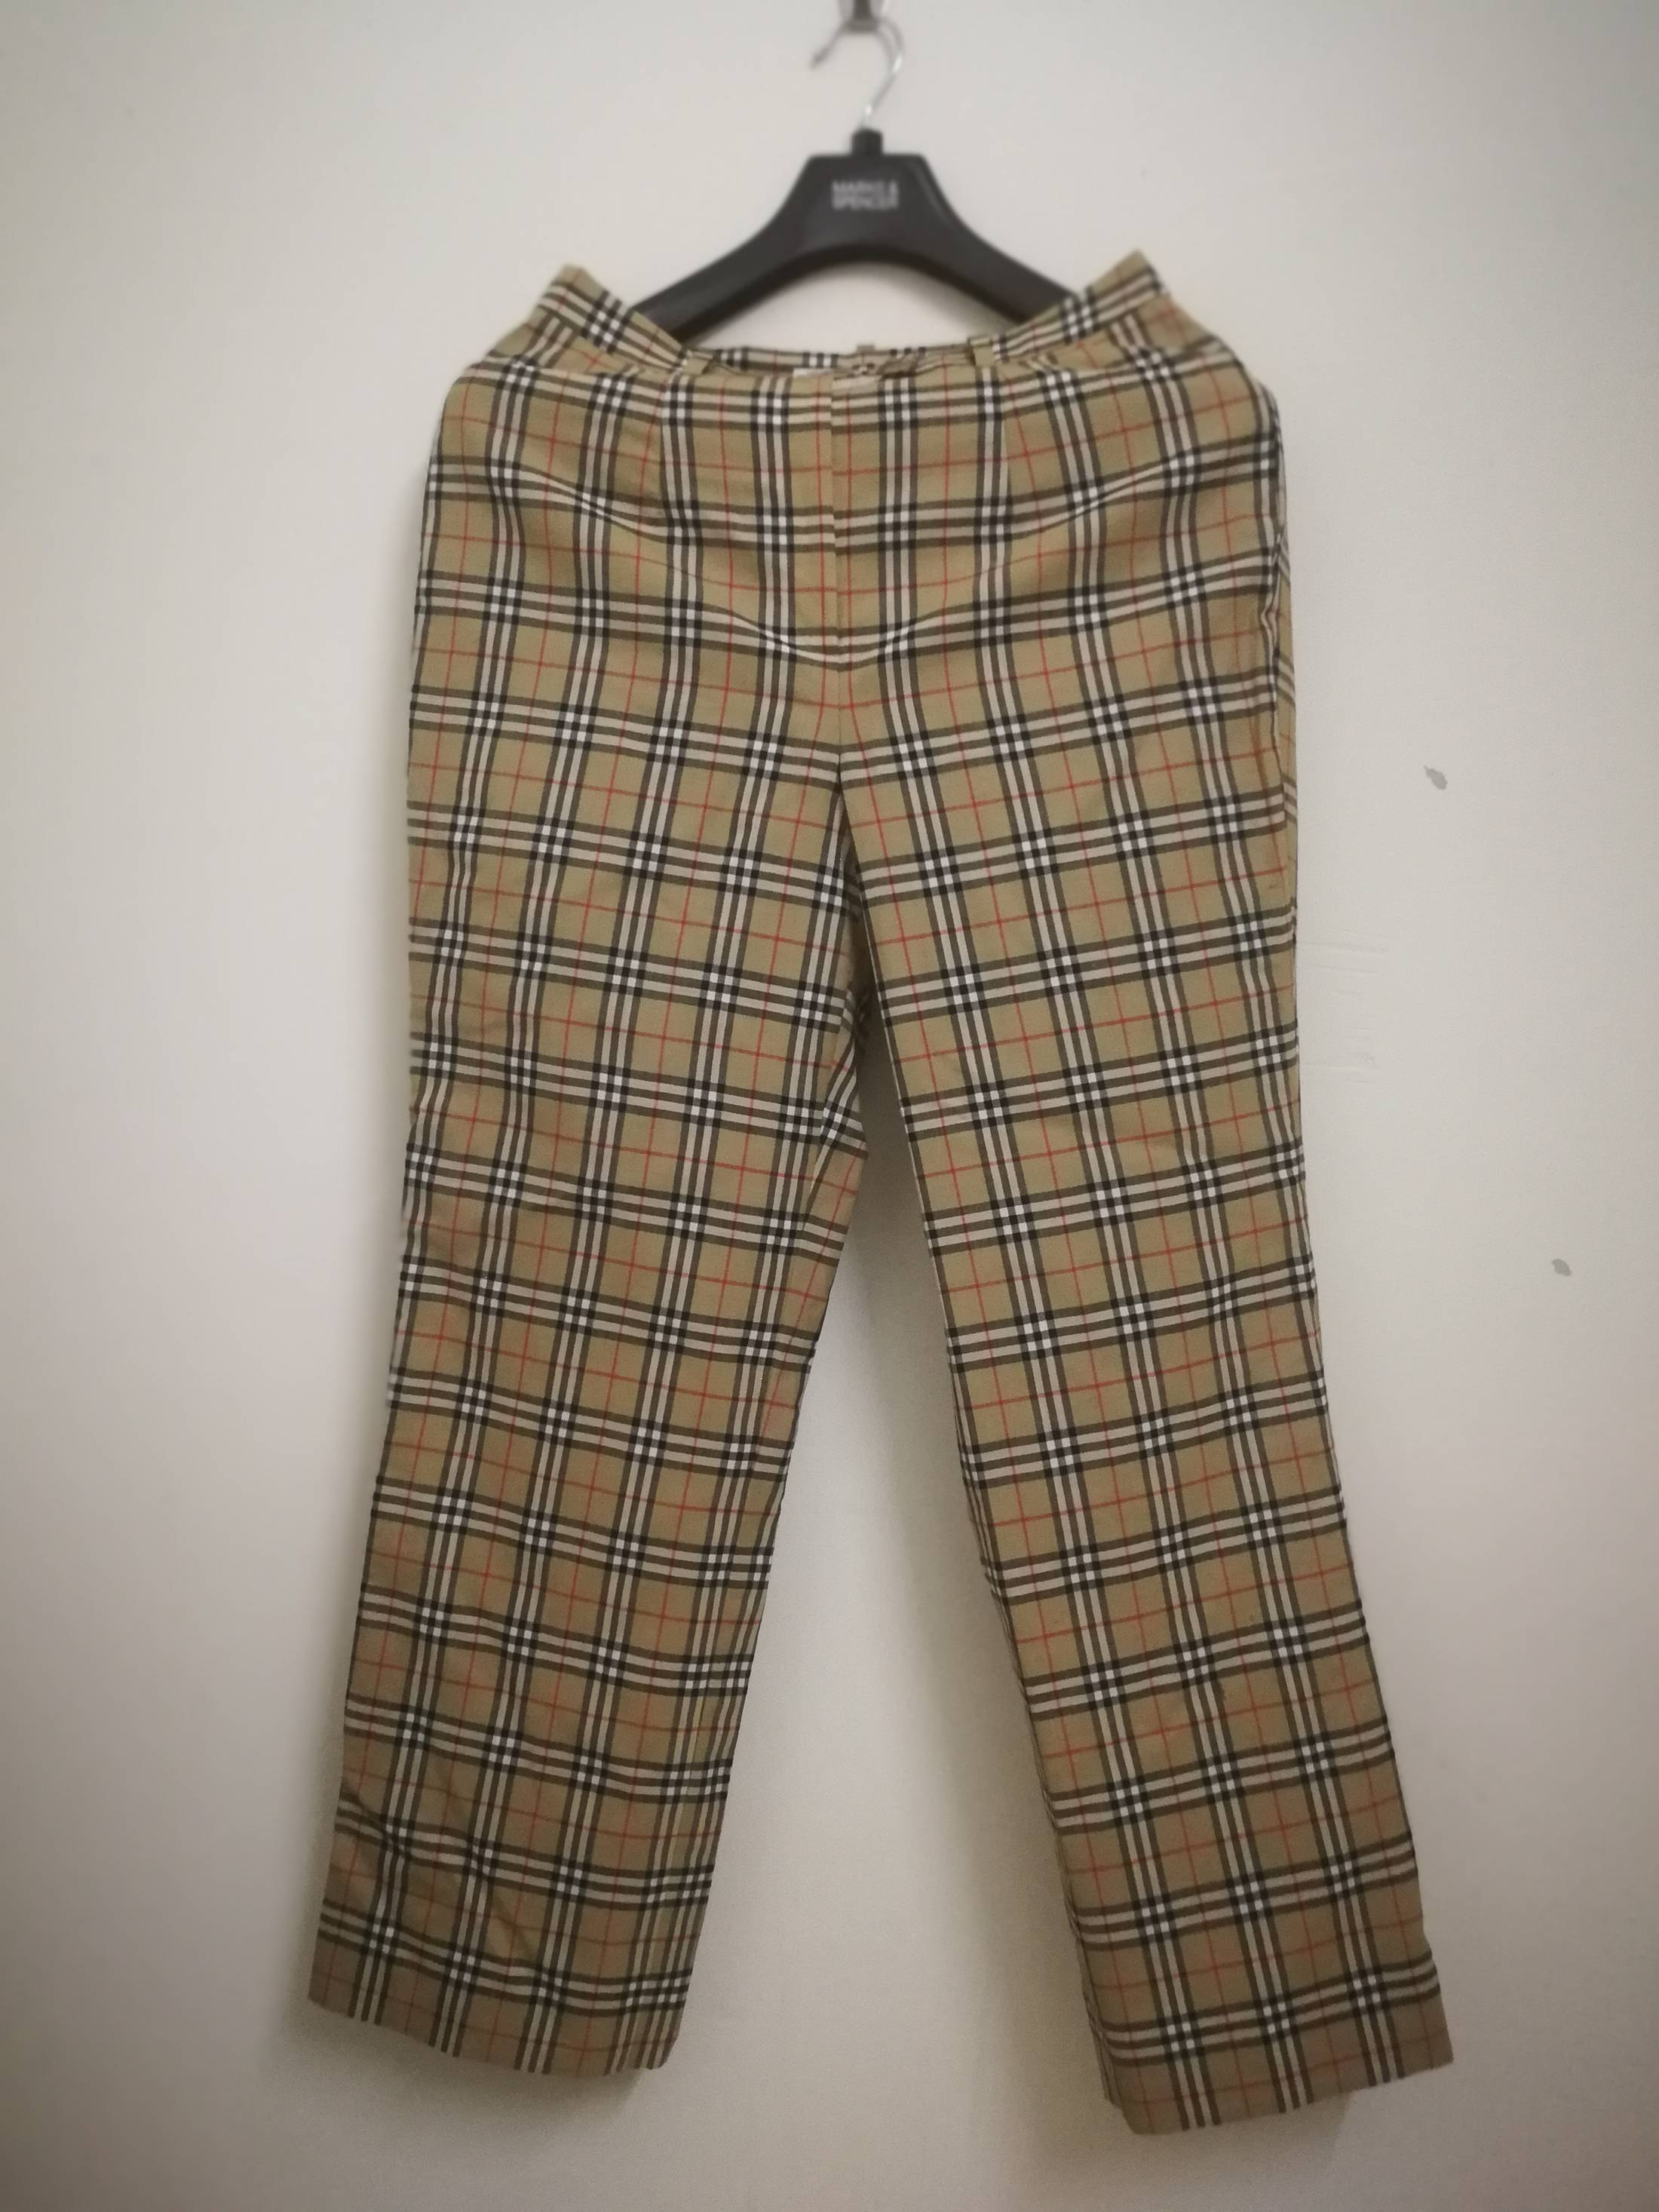 7525c7a10f0a6a Burberry Vintage Burberrys Pants Nova Check Size 42 Brown | Grailed